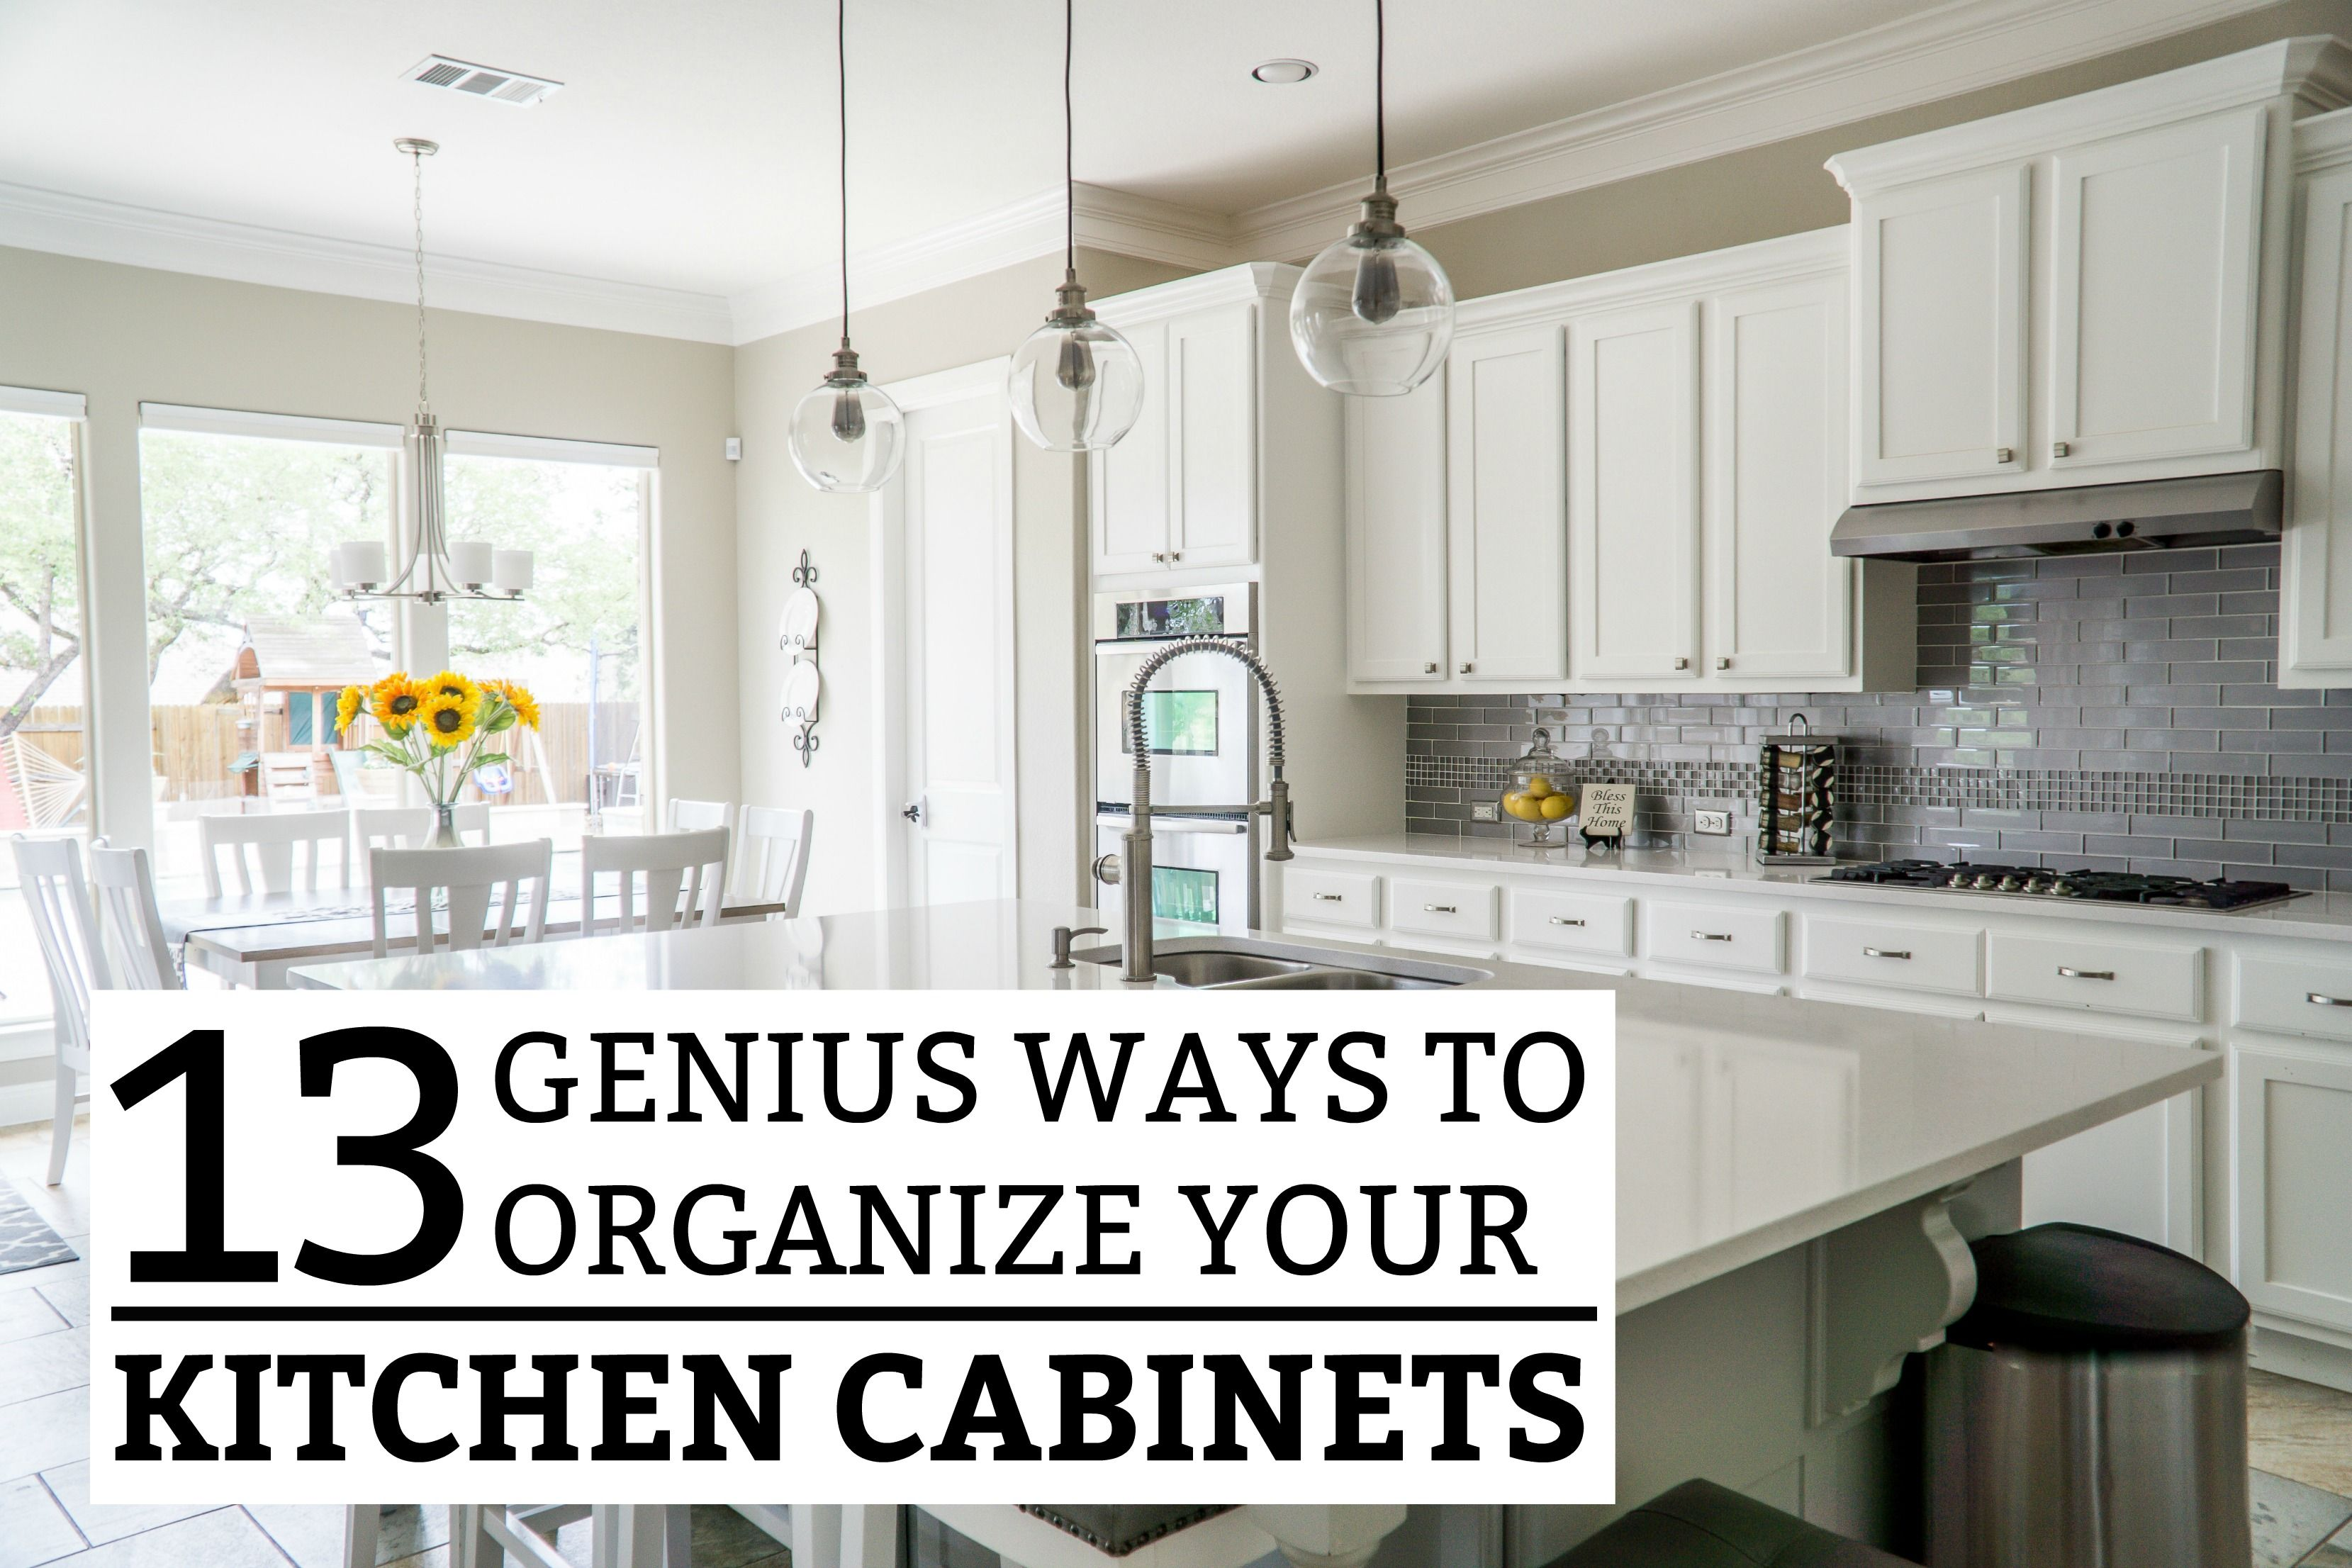 diy ideas top 13 genius way to organize your kitchen cabinets rh pinterest com